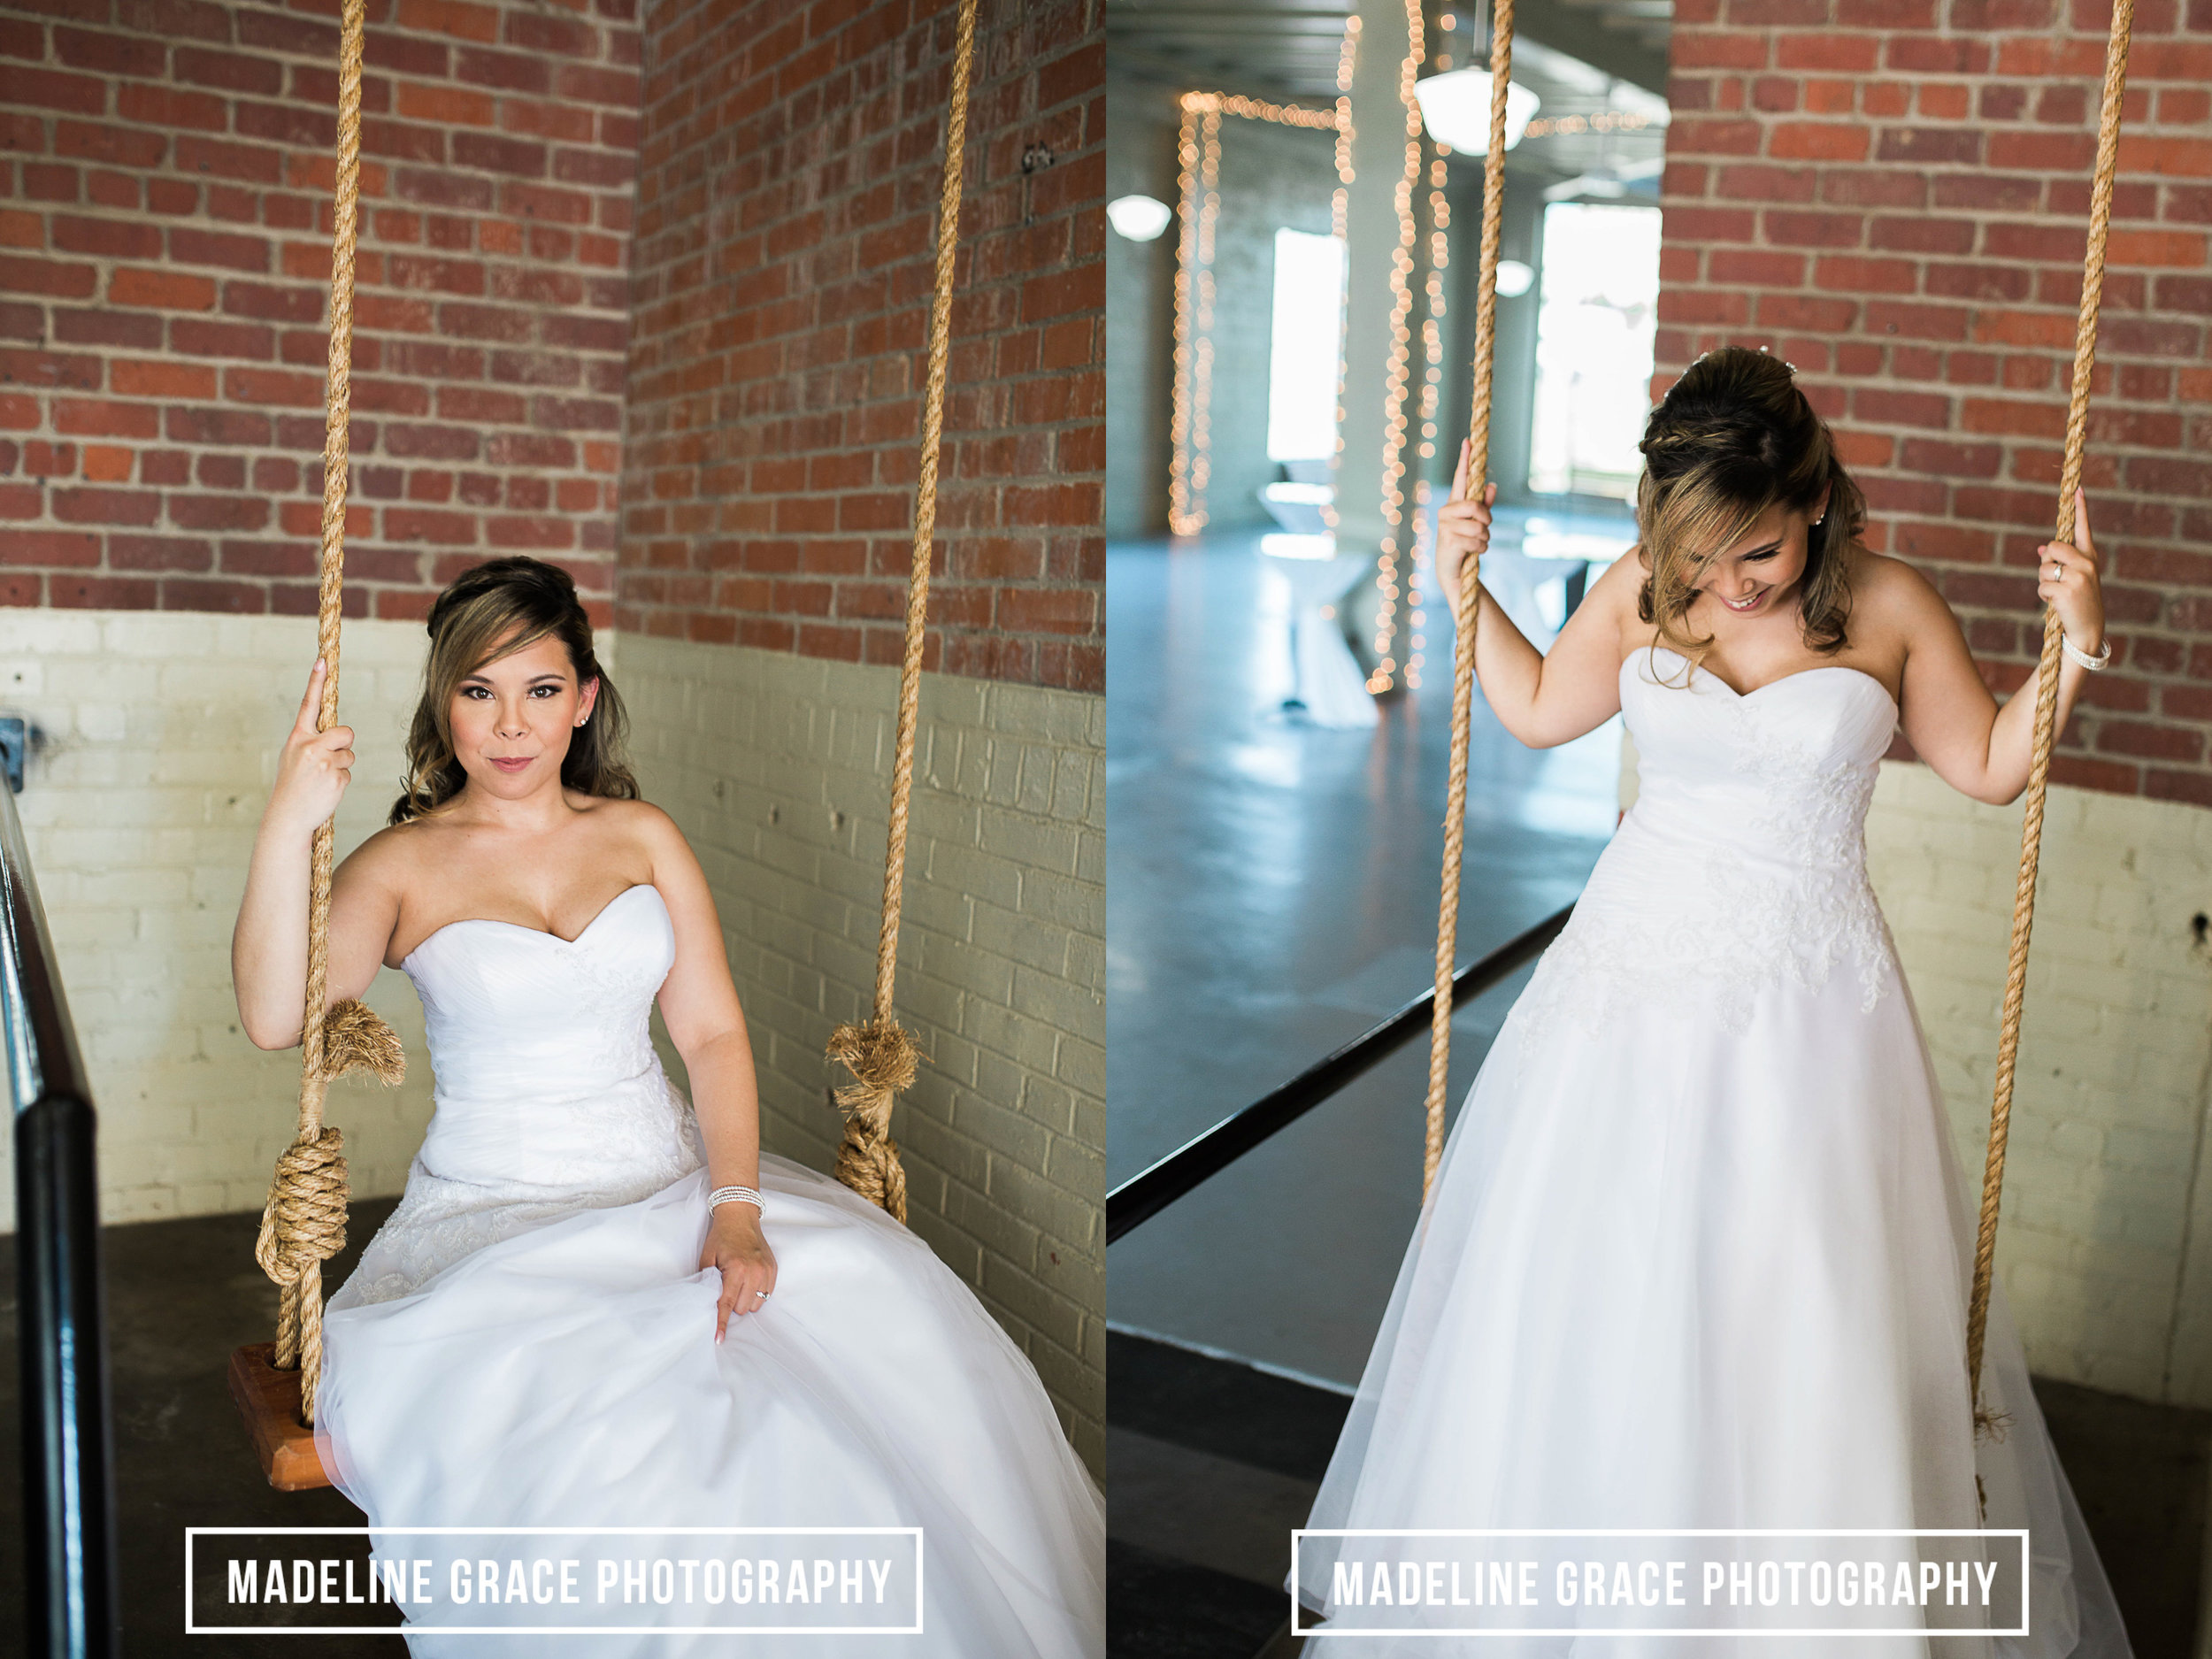 MGP-Sarah-Bridals-Blog-6 copy.jpg